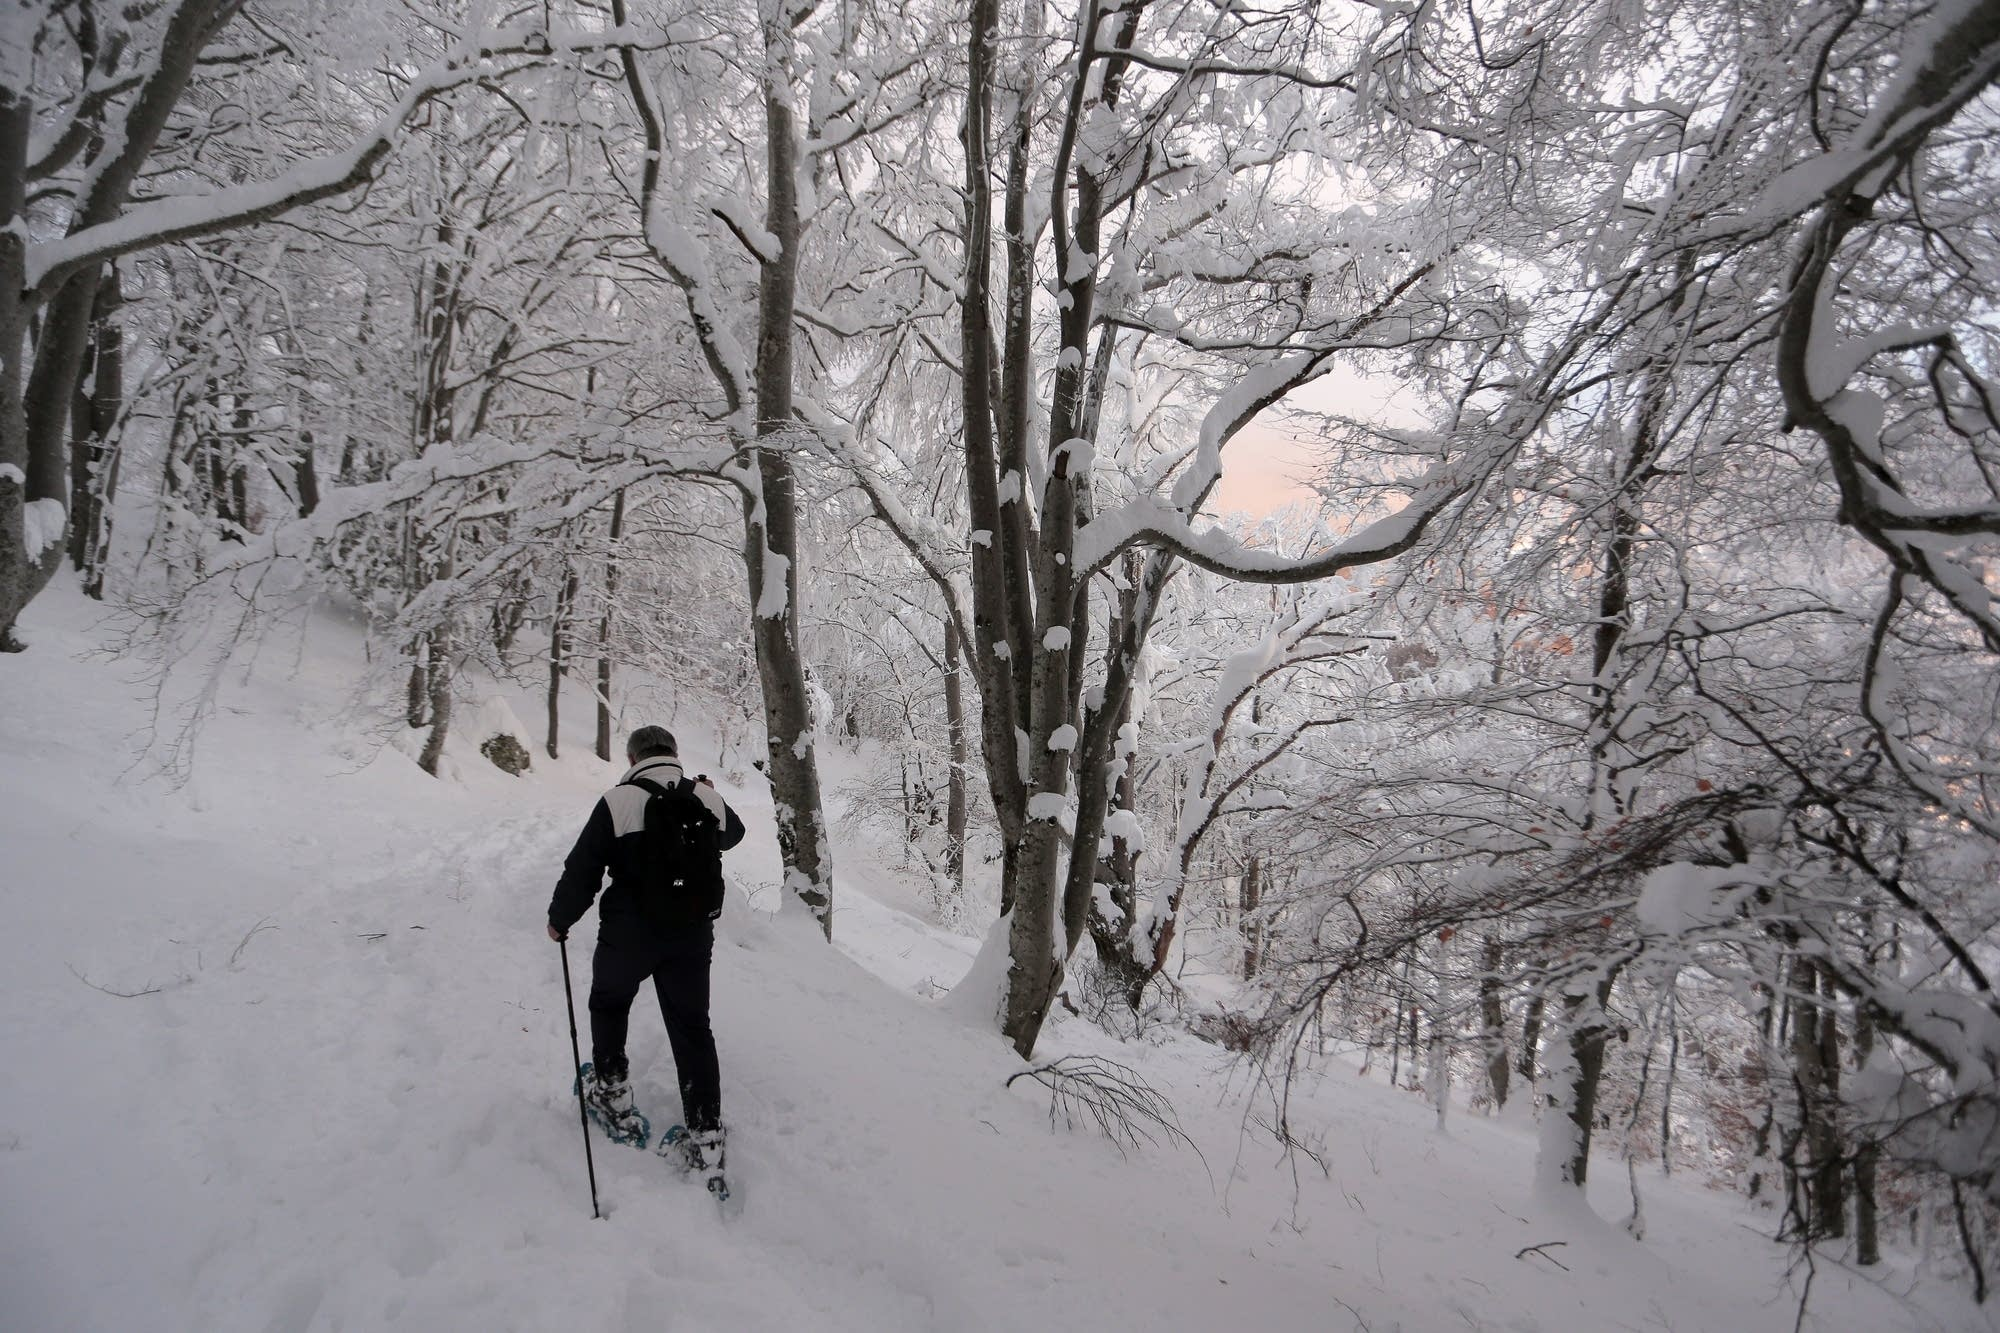 A man walks with snowshoes.